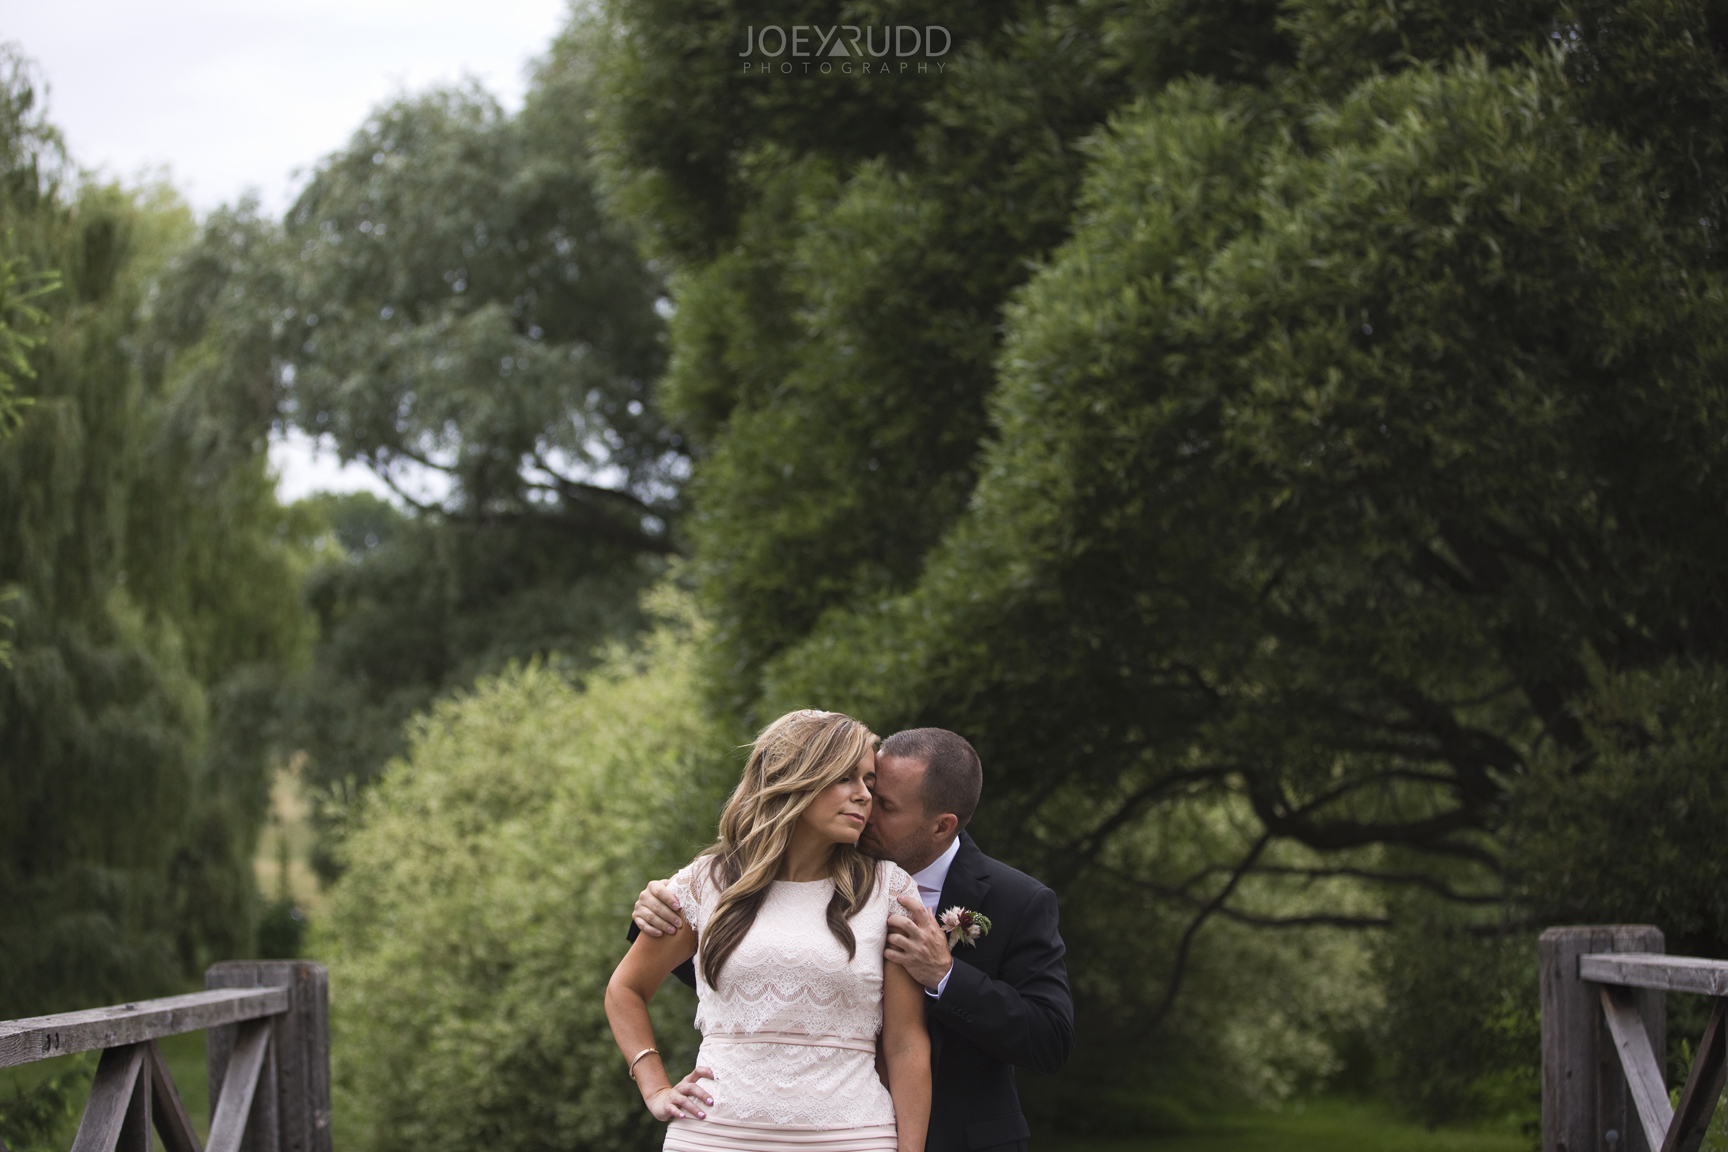 Elopement Wedding Photography Joey Rudd Photography Ottawa Wedding Photographer Arboretum Nature